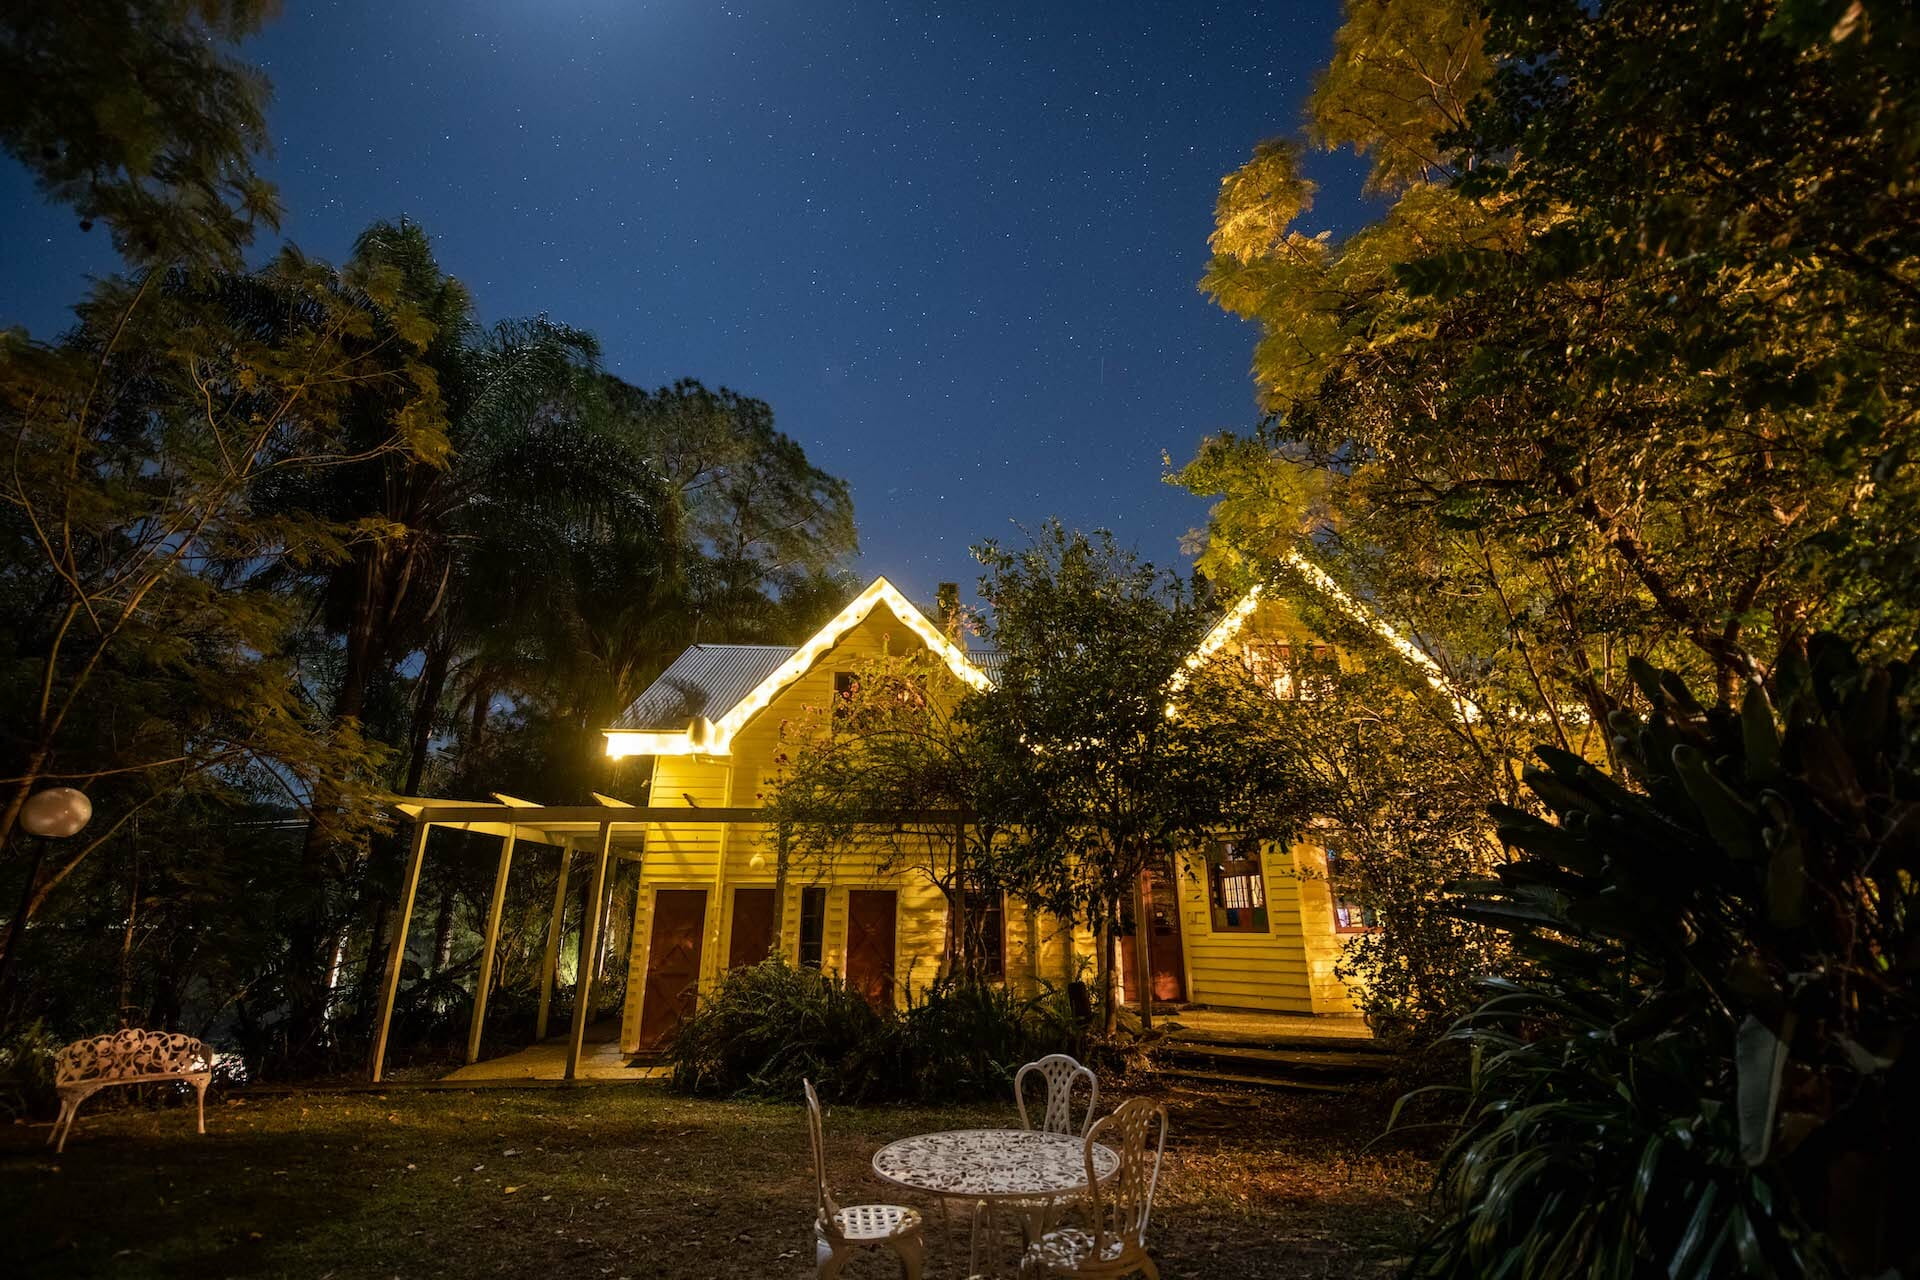 Frangipani House Lit Up At Night 1920 x 1280